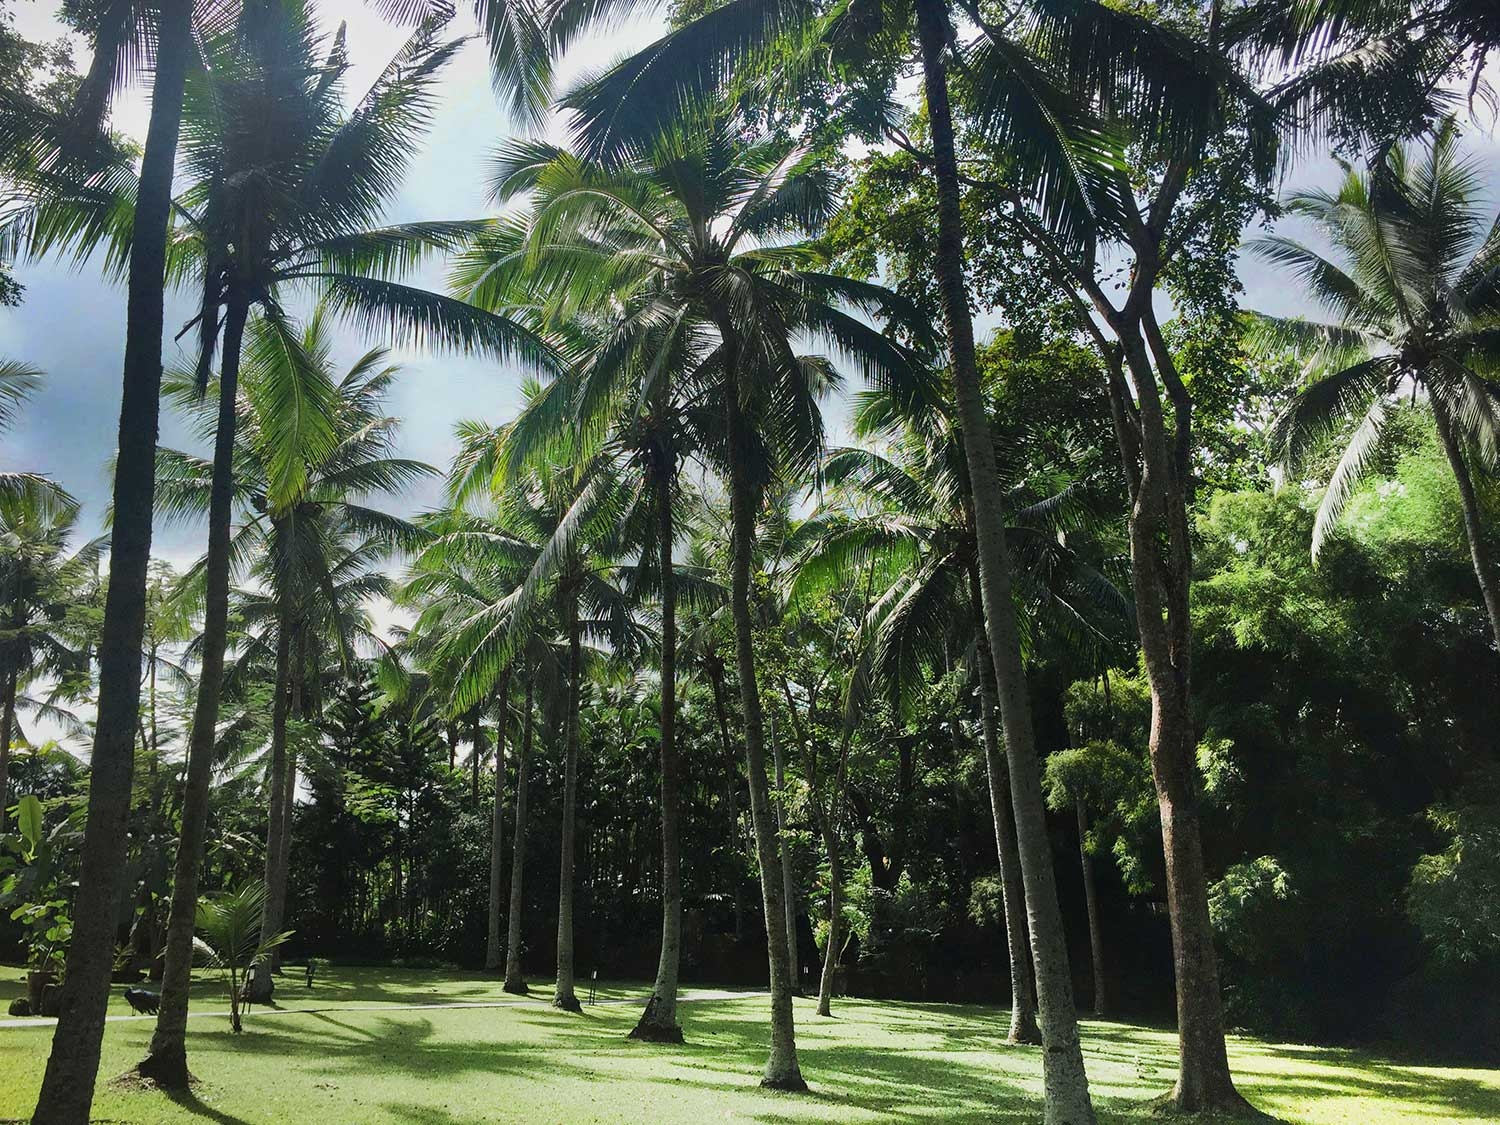 Walking through perfect rows of coconut trees